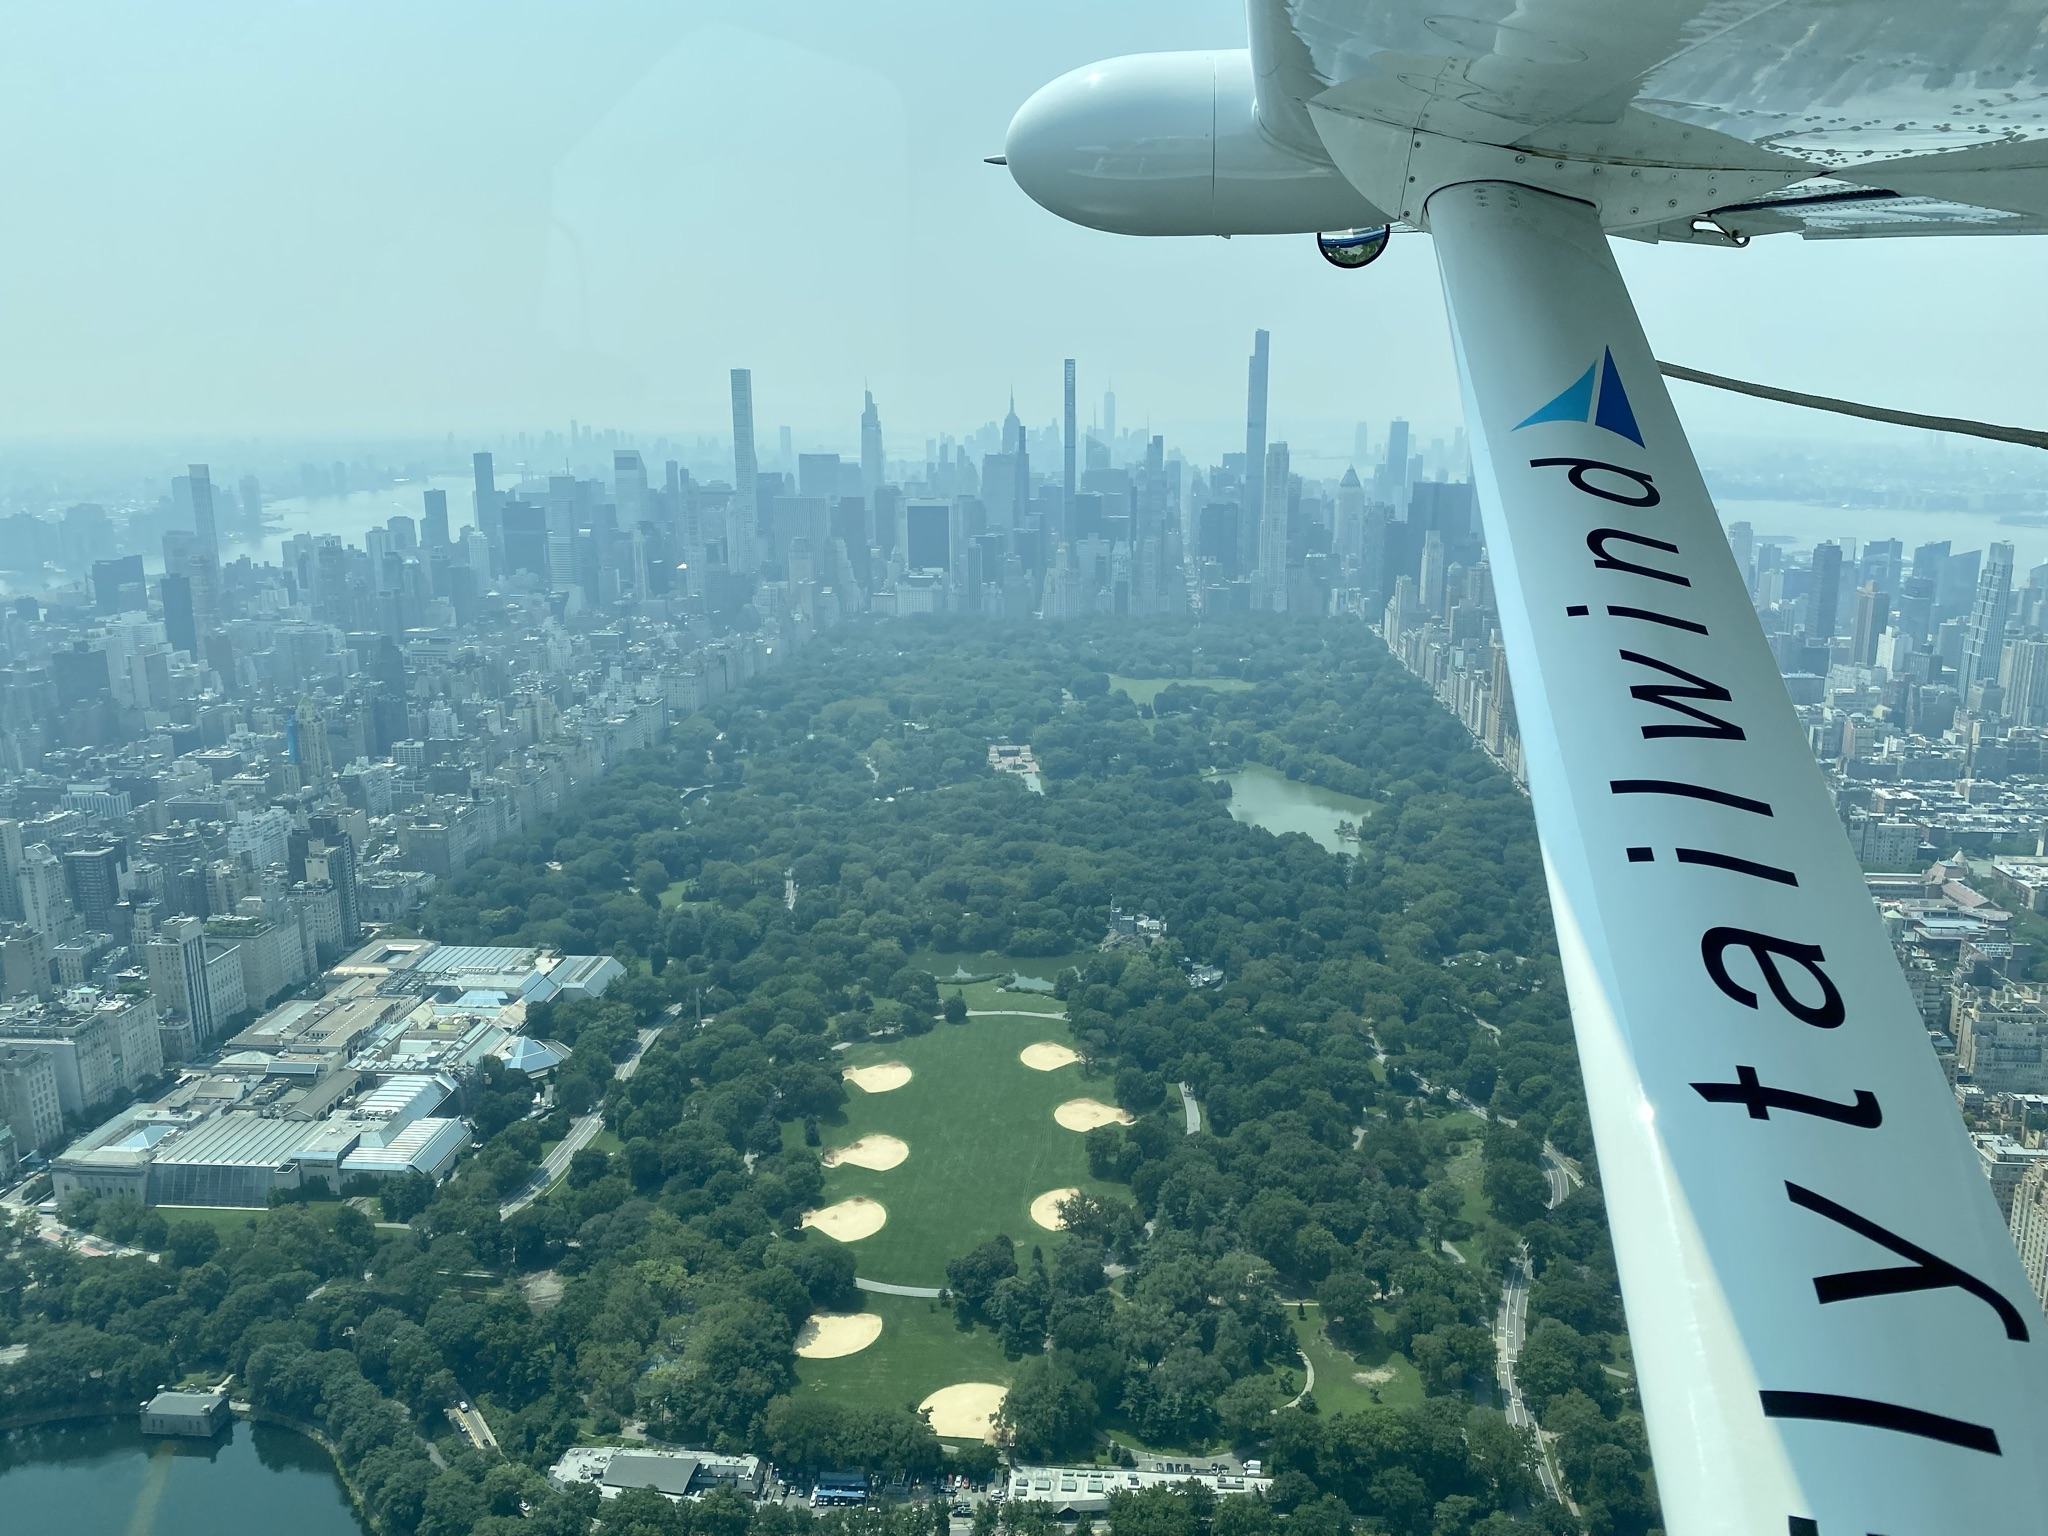 view from a Tailwind seaplane in flight.